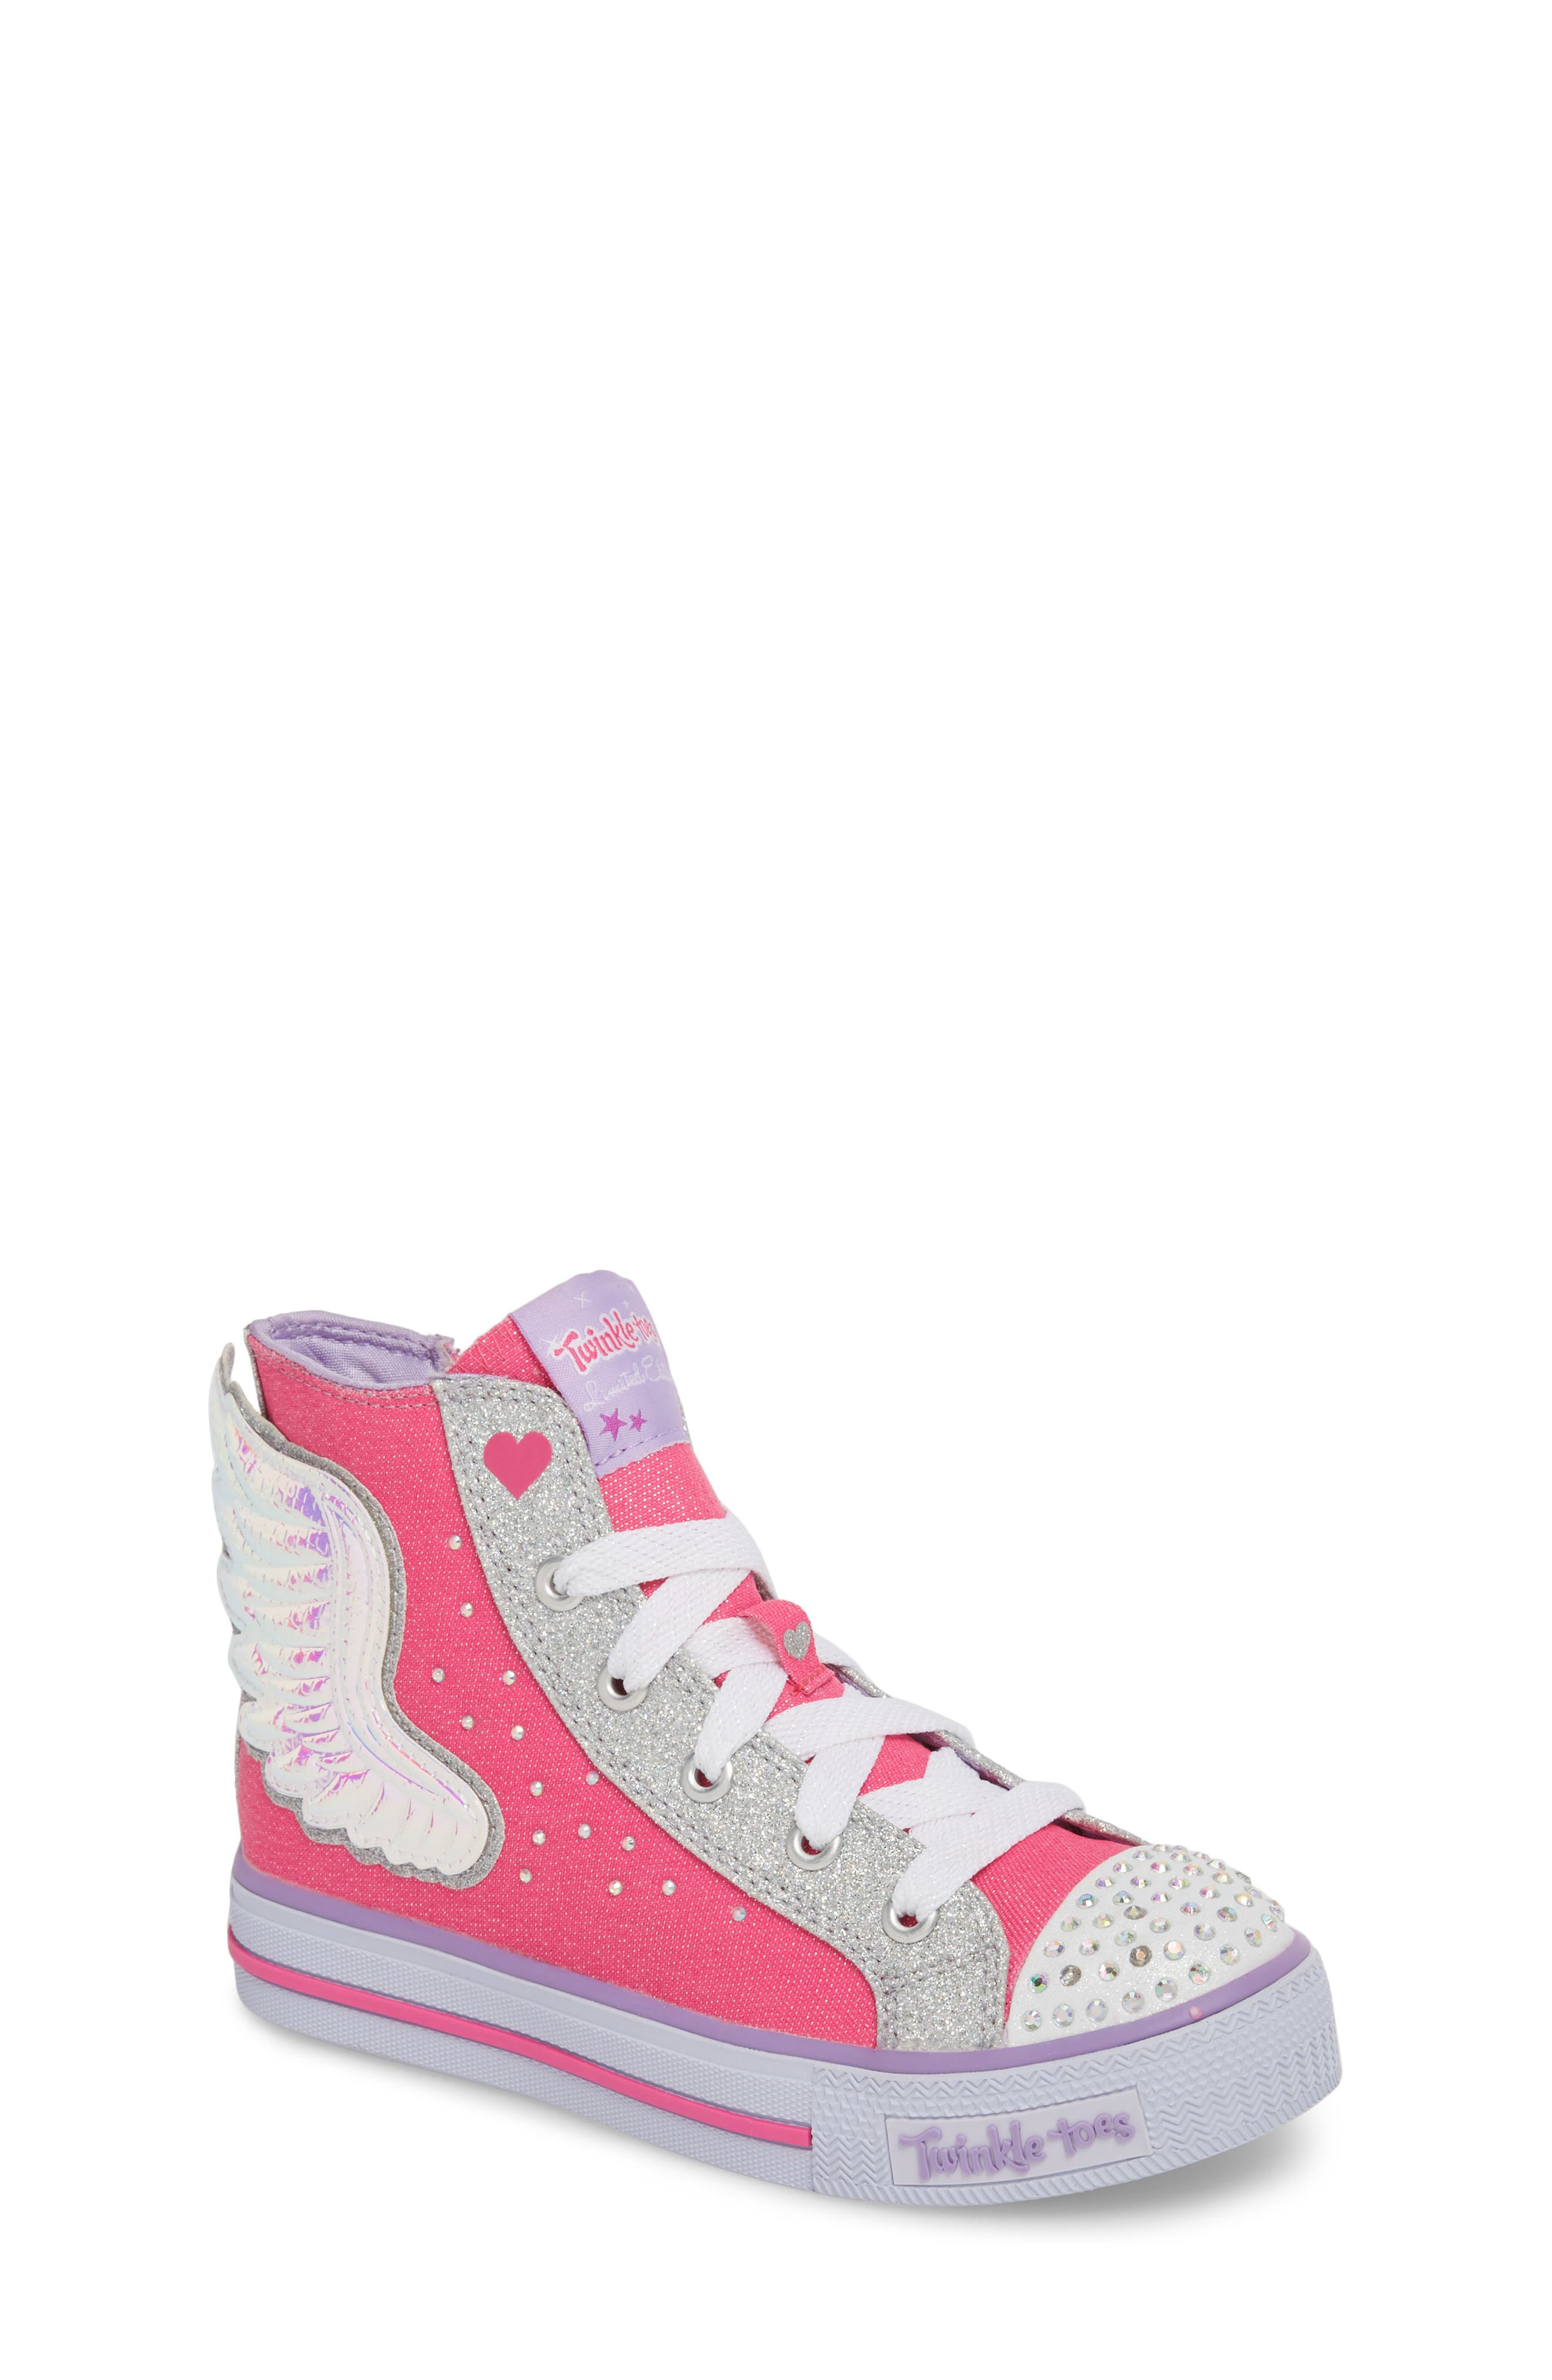 Twinkle Toes Shuffles Wonder Wings Light-Up High Top Sneaker,                             Main thumbnail 1, color,                             Hot Pink/ Silver